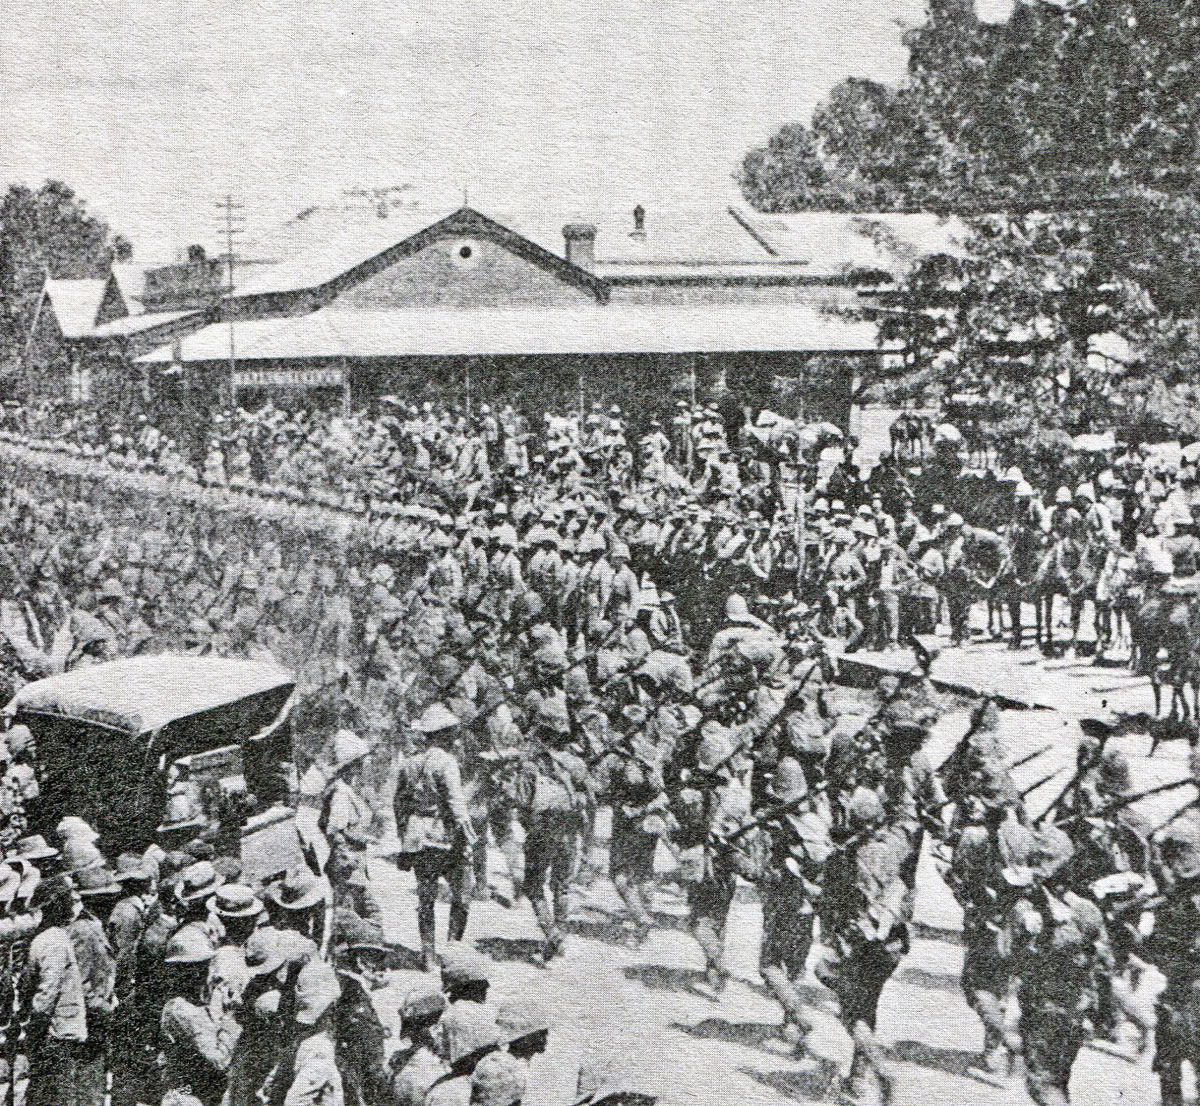 General Buller's Natal Field Force entering Ladysmith on 28th February 1900 after the Battle Pieters, fought from 14th to 28th February 1900 in the Great Boer War